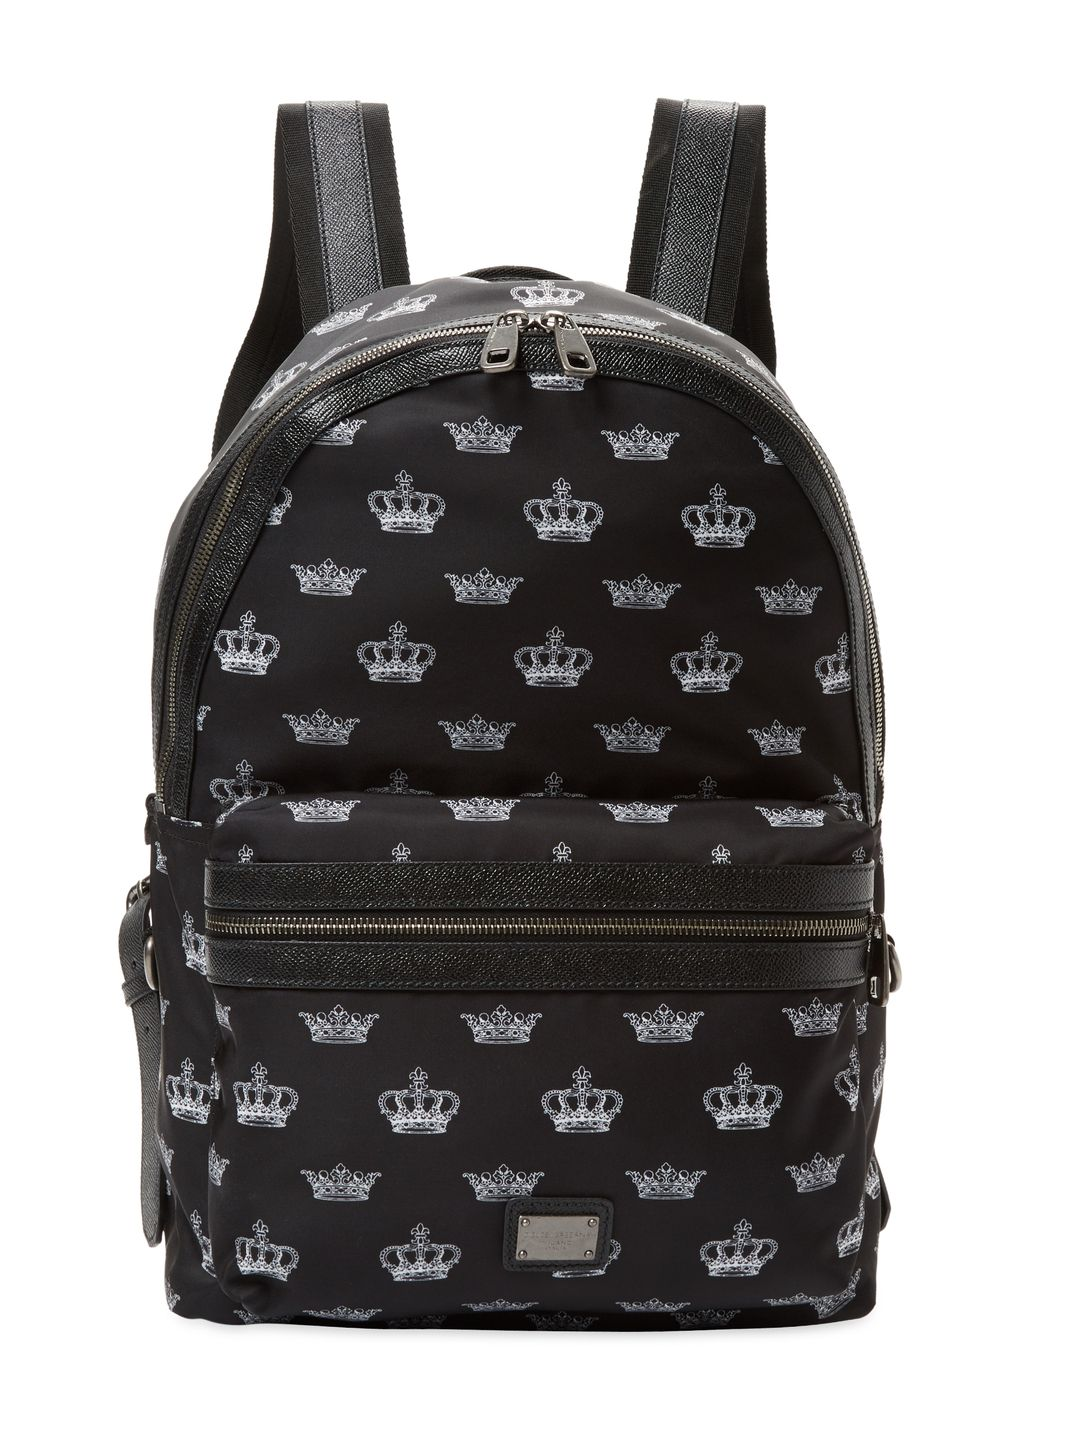 DOLCE   GABBANA CROWN BACKPACK - BLACK.  dolcegabbana  bags  nylon   backpacks   783426e879